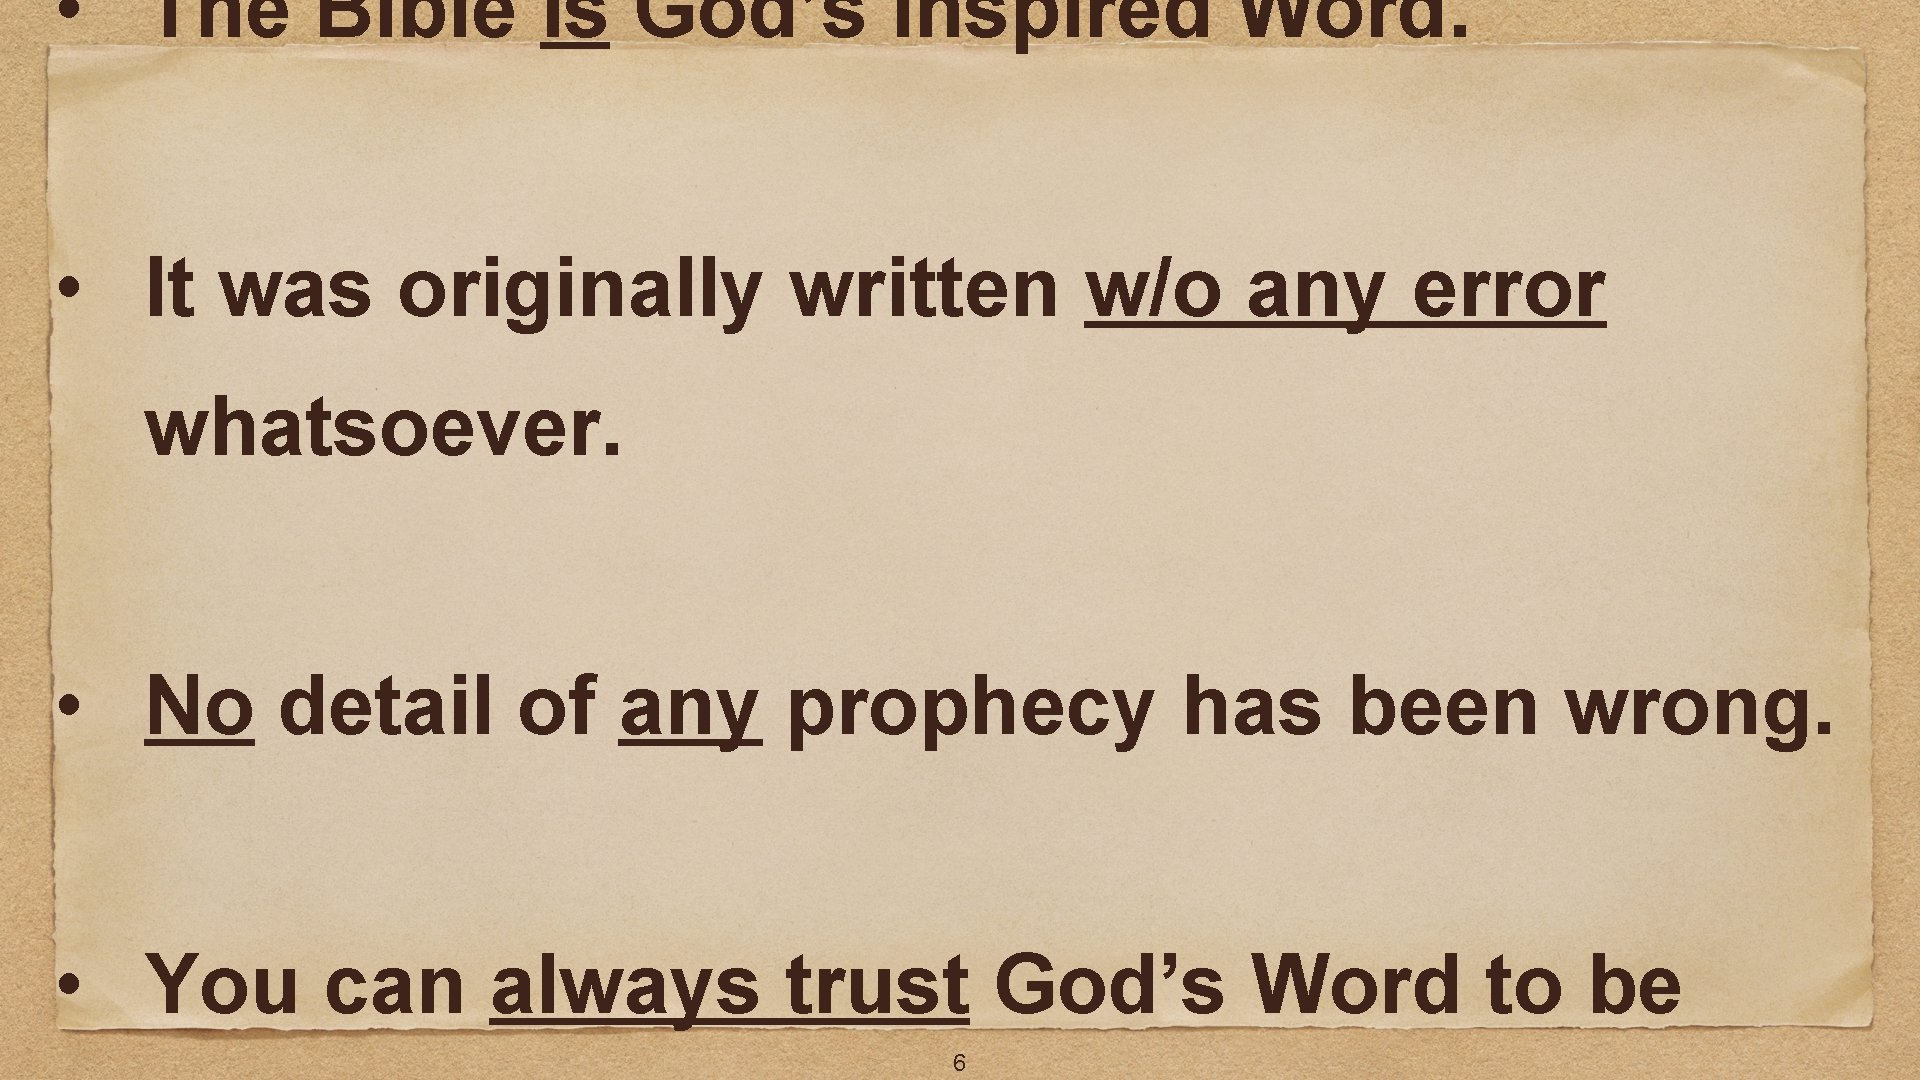 • The Bible is God's inspired Word. • It was originally written w/o